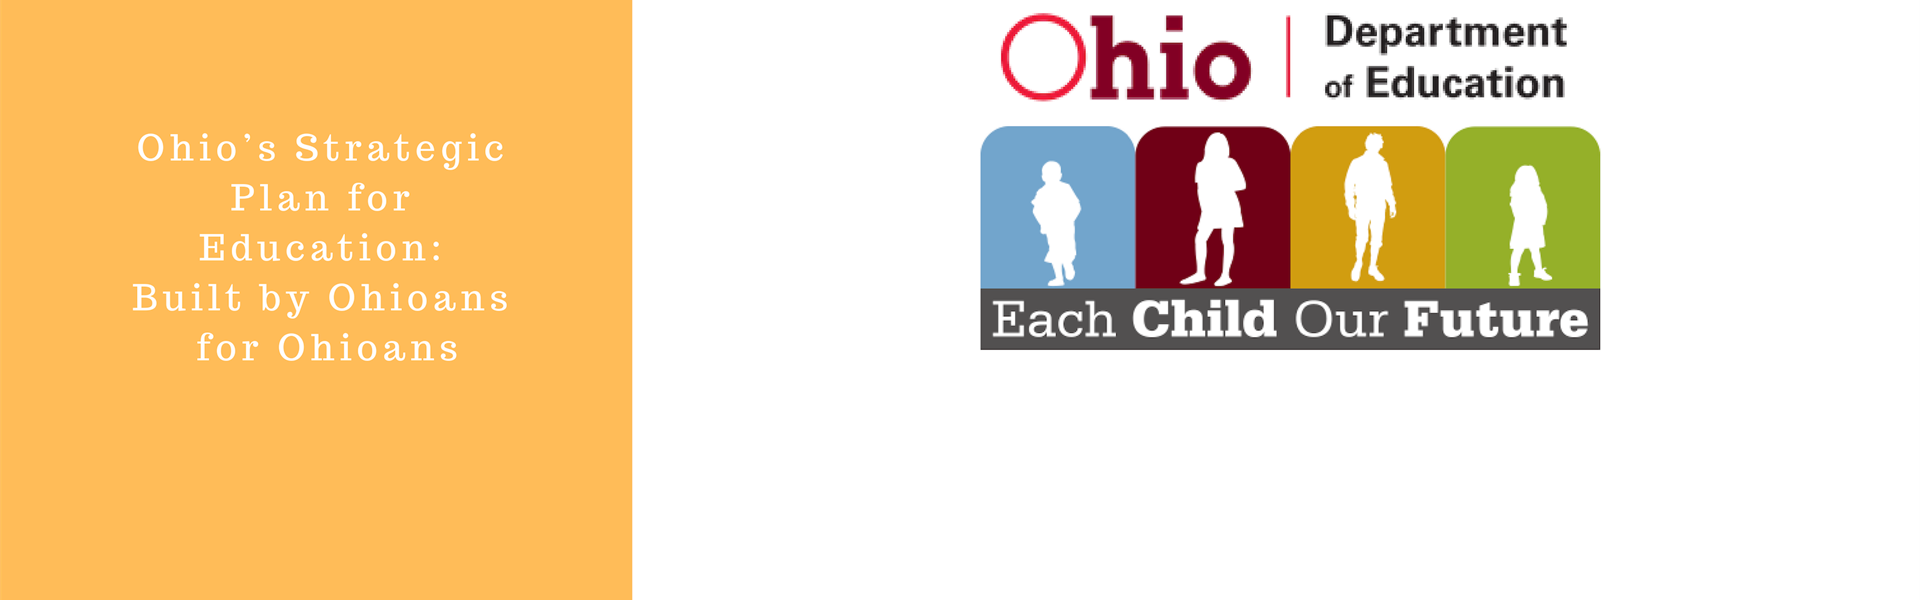 Each Child Our Future: Ohio's Strategic Plan for Education